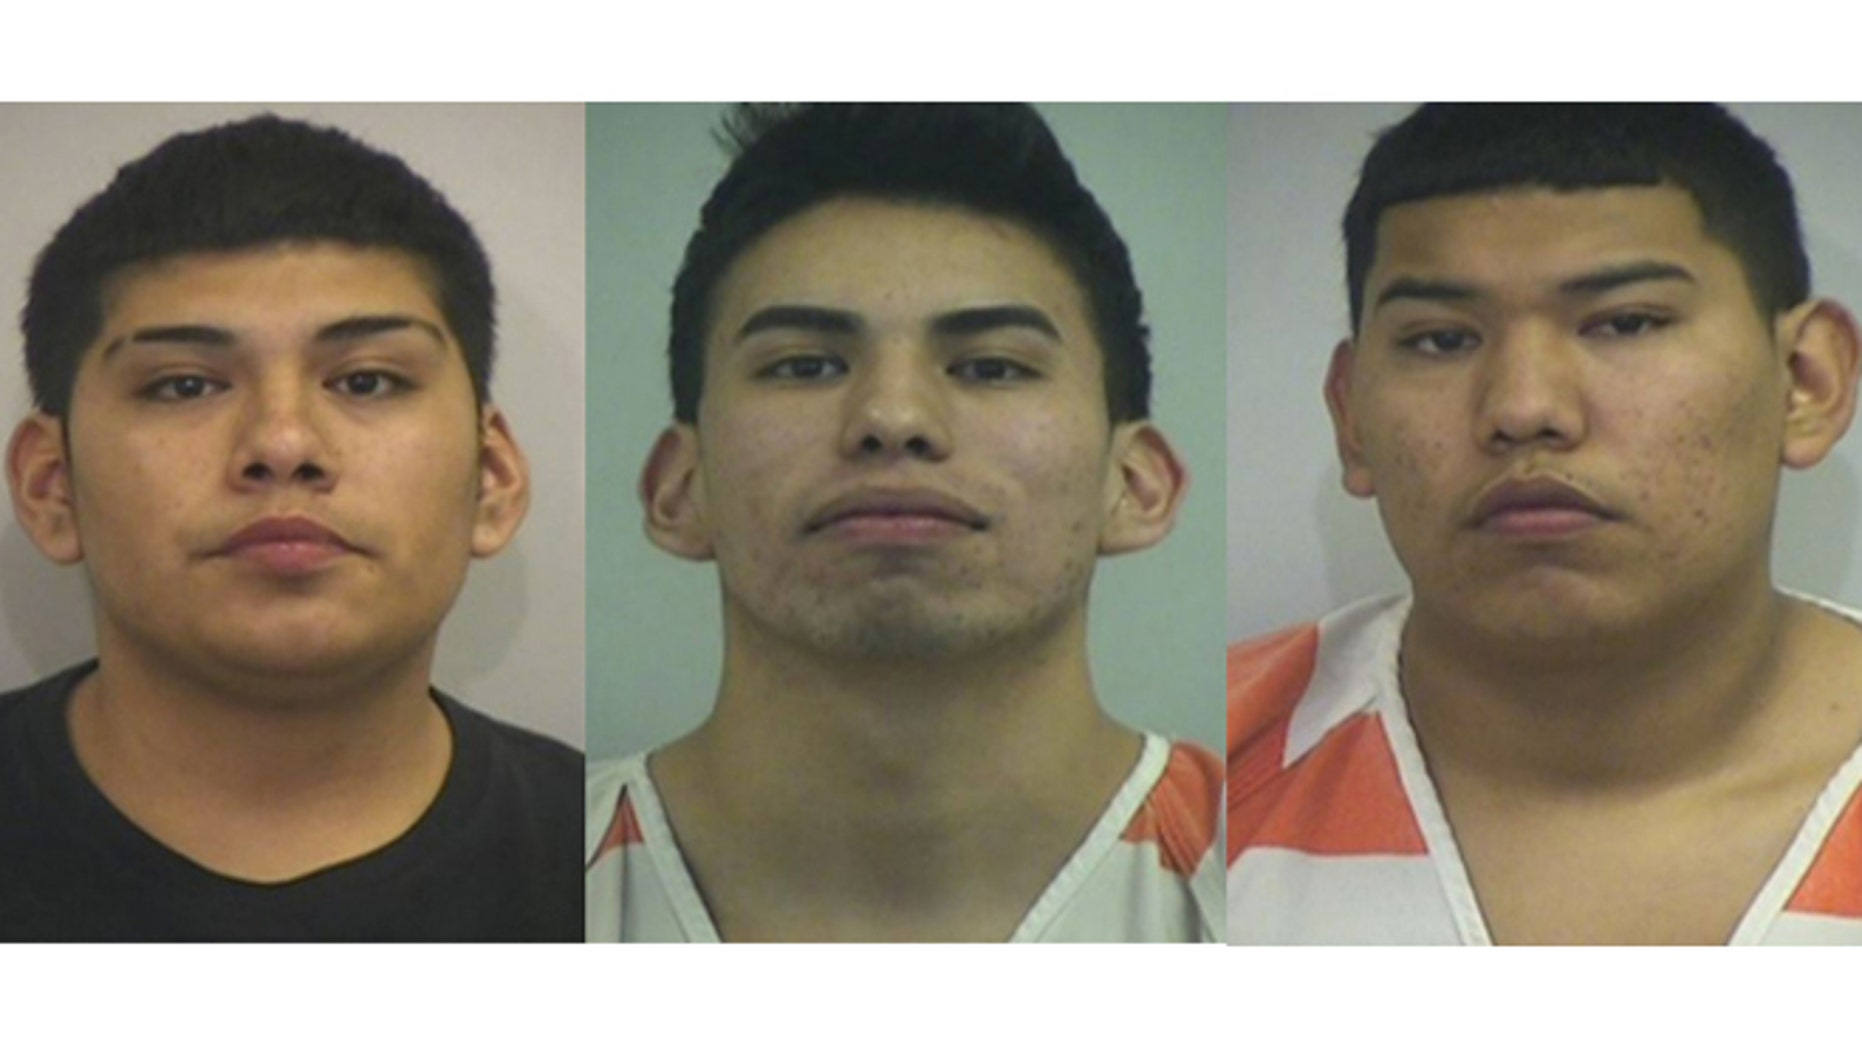 The Perkins brothers. From left: Thomas, Jesse and Edward Perkins. (Photos: Irving City Jail)